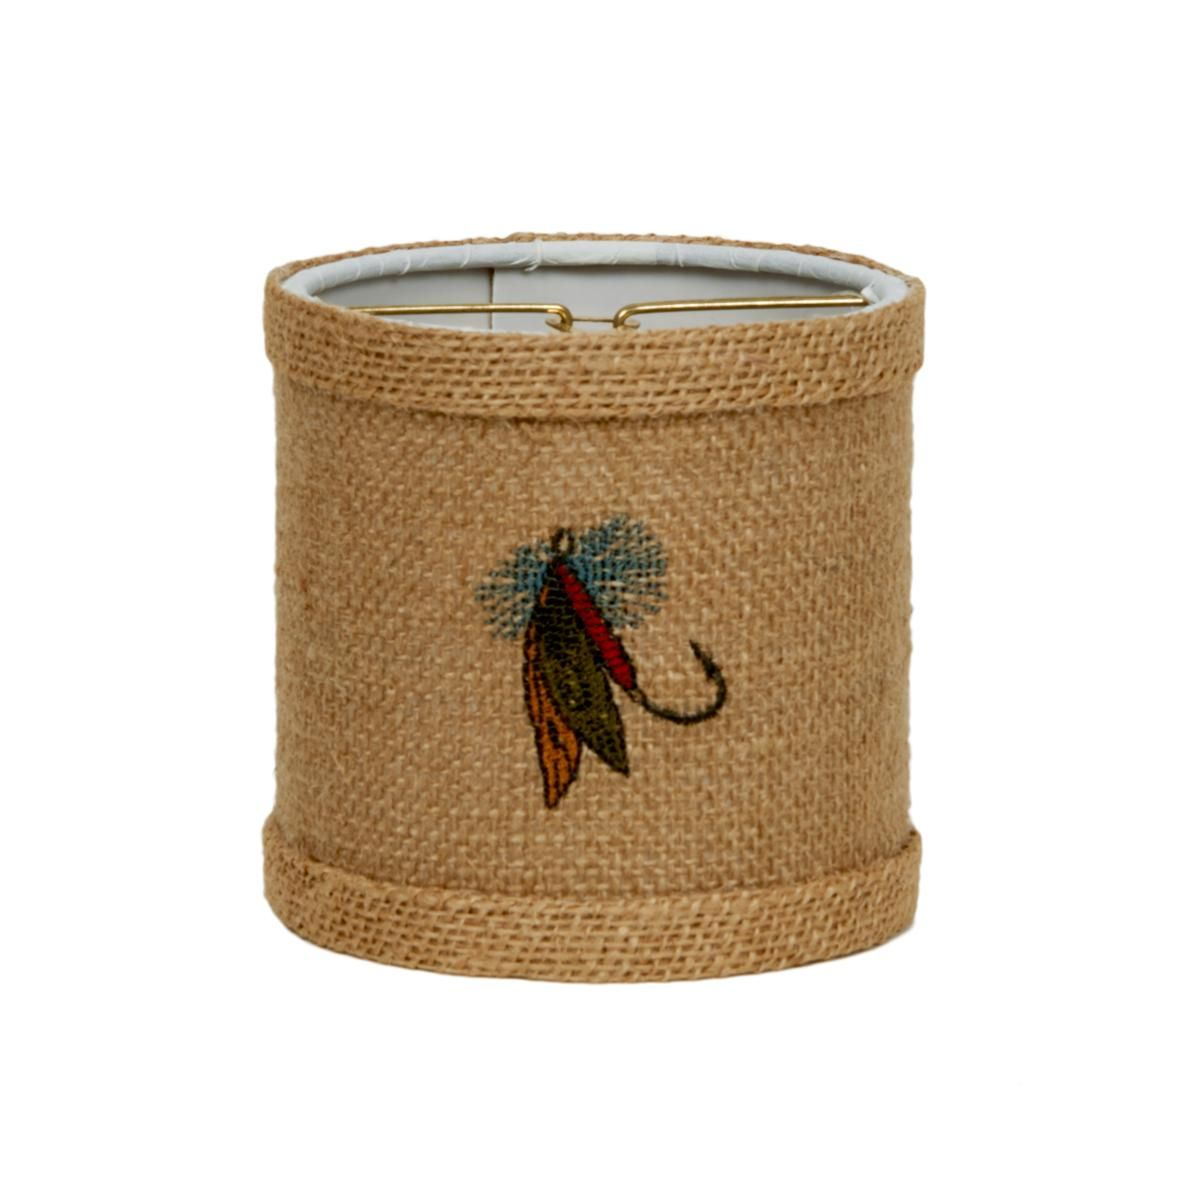 4 fishing lure burlap chandelier drum shade4 fishing lure burlap 4 fishing lure burlap chandelier drum shade4 fishing lure burlap chandelier drum shade 4 arubaitofo Images